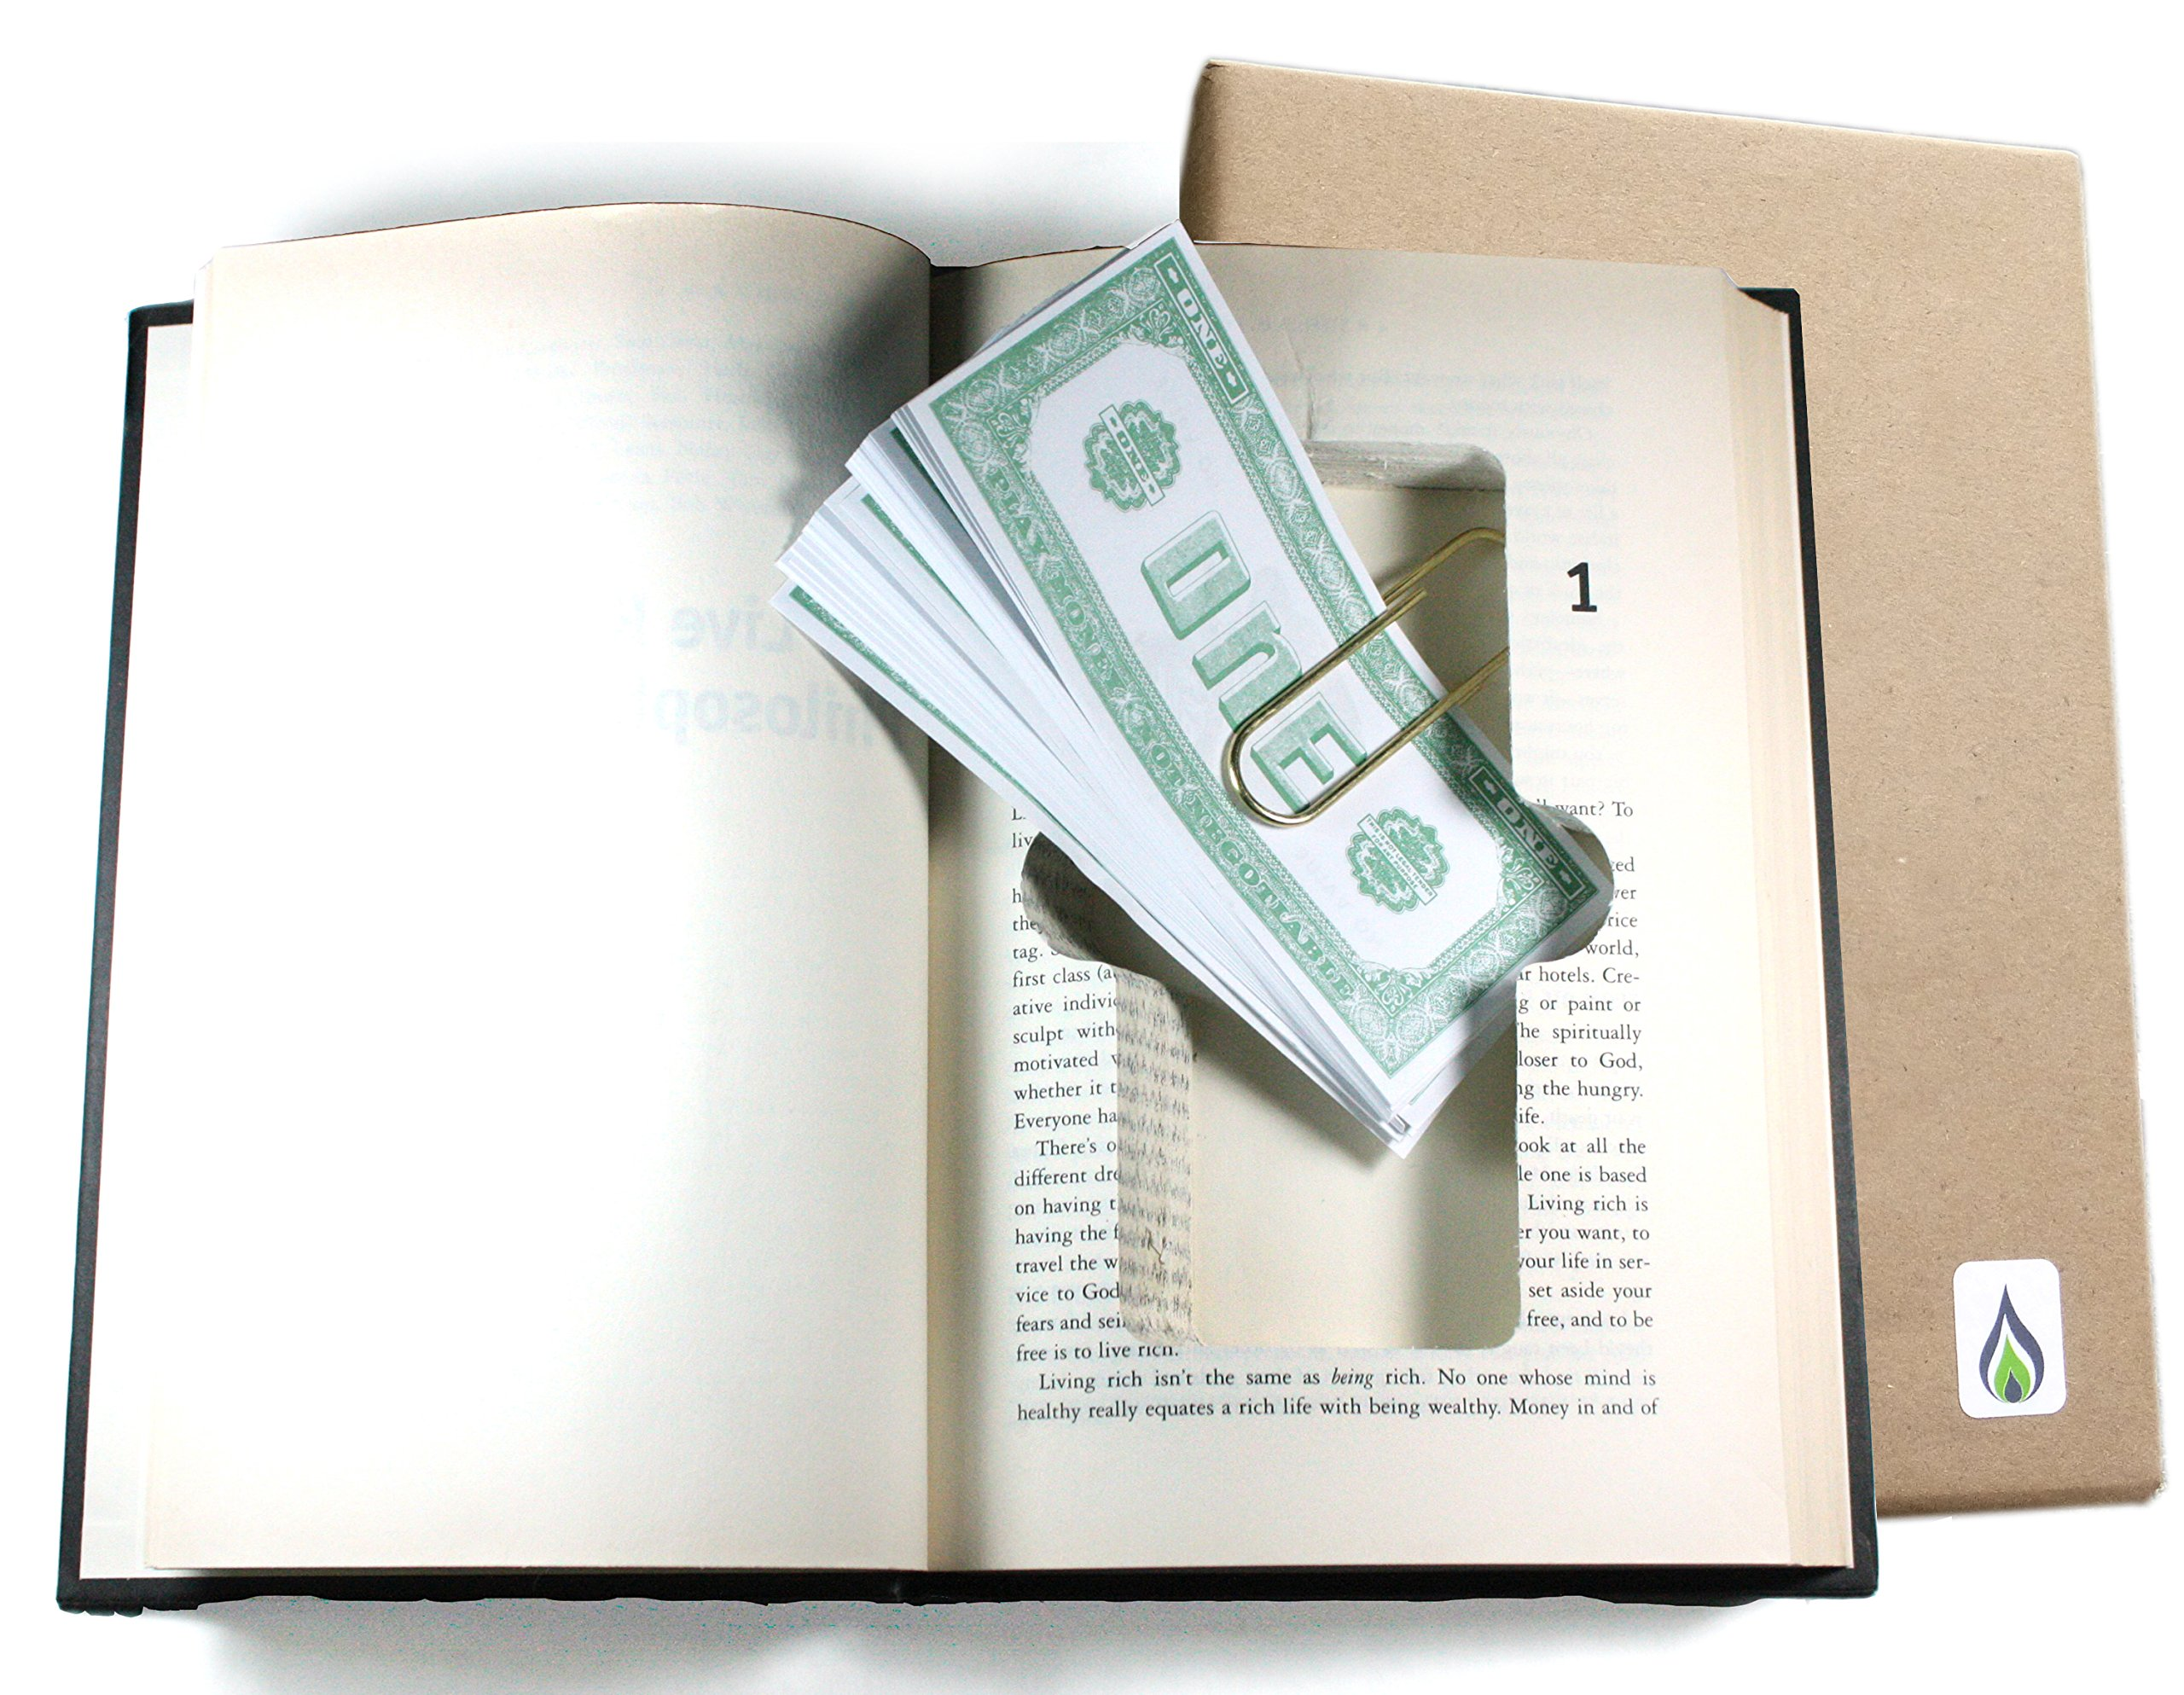 SneakyBooks Recycled Hollow Book Money Diversion Safe (money clip included) by SneakyBooks